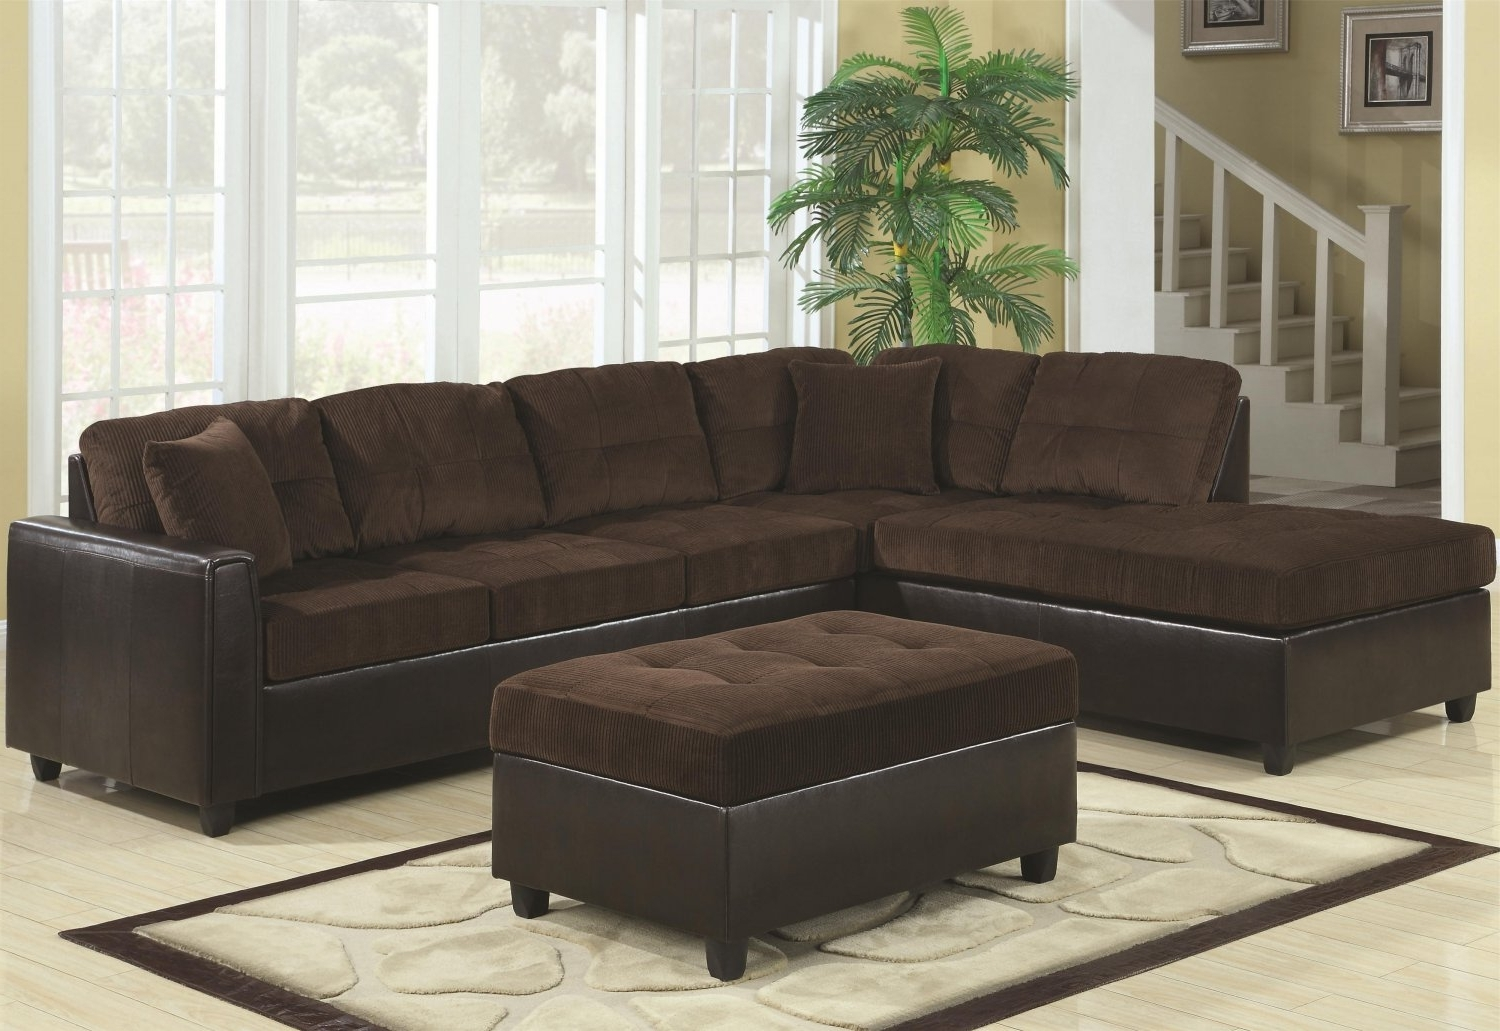 Brown L Shaped Sectional Couch With Black Leather Base And Gray Throughout 2018 Leather L Shaped Sectional Sofas (View 3 of 20)